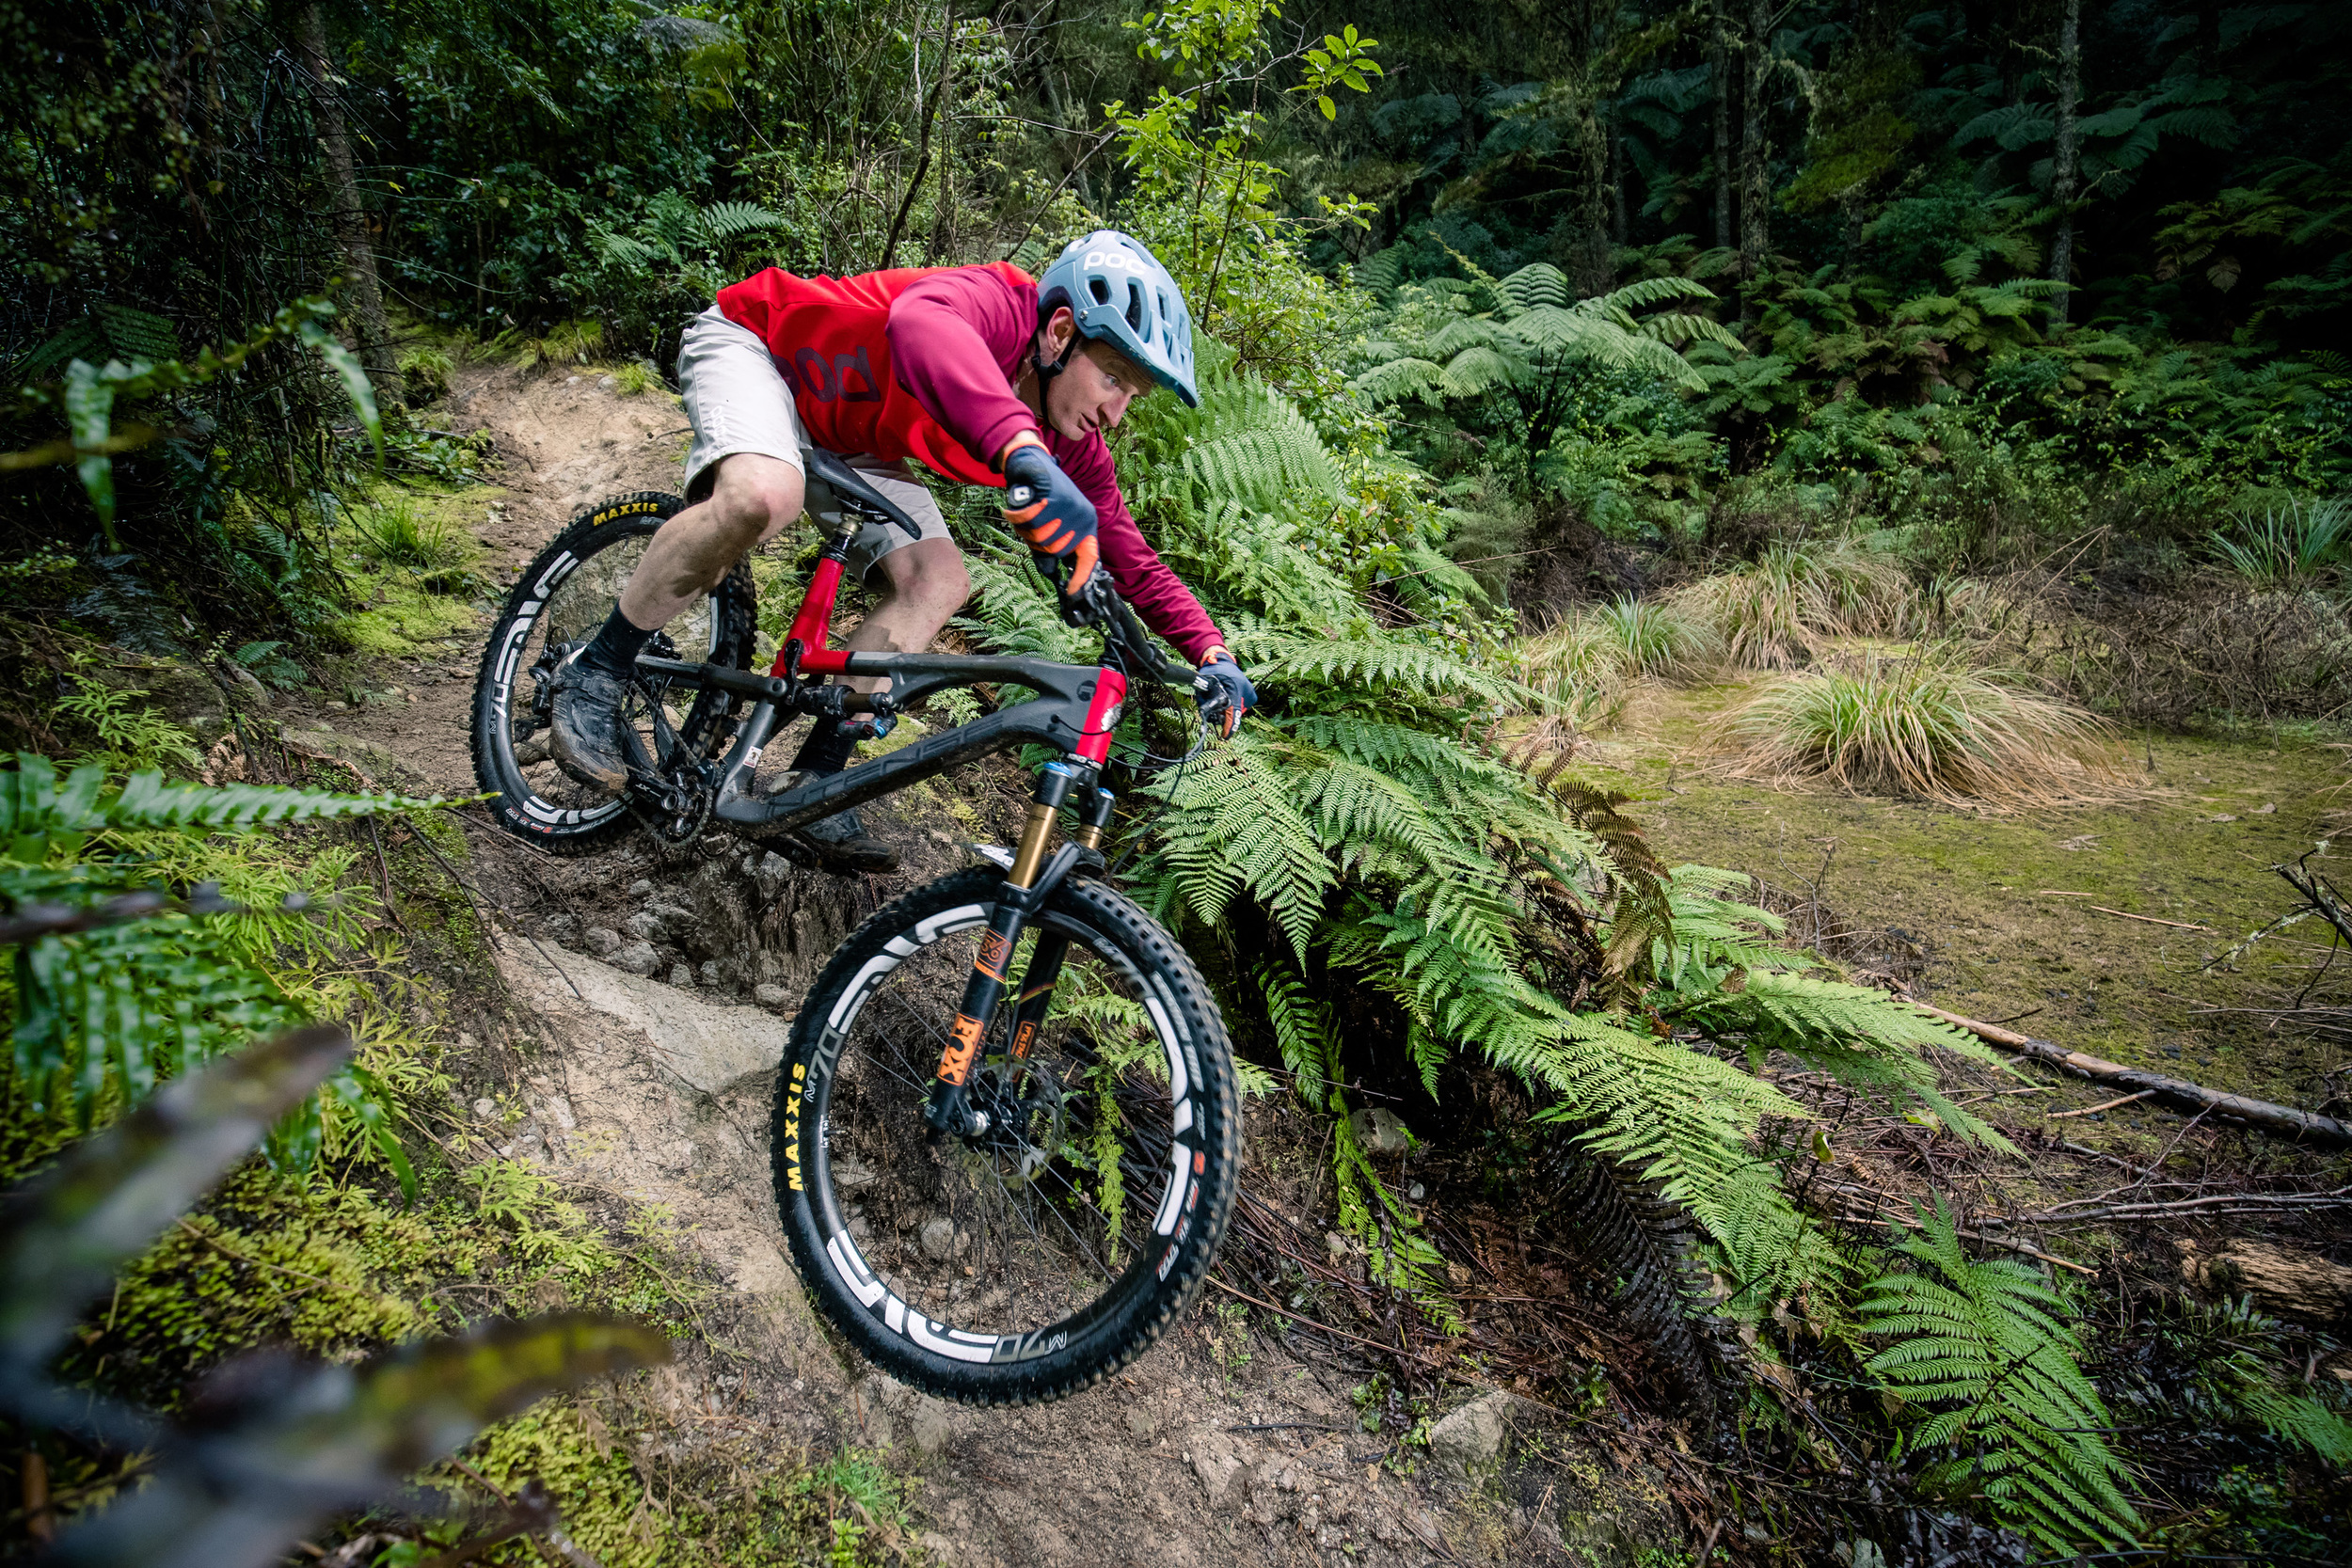 """Lord Weasel got to break it in before it came to me. Weasel used to smash the boys in DH last century. Now he builds dark trails in Vegas like """"Def Leppard"""" and....Oh, sorry, that ones a secret. photo: Graeme Murray. Rotorua."""